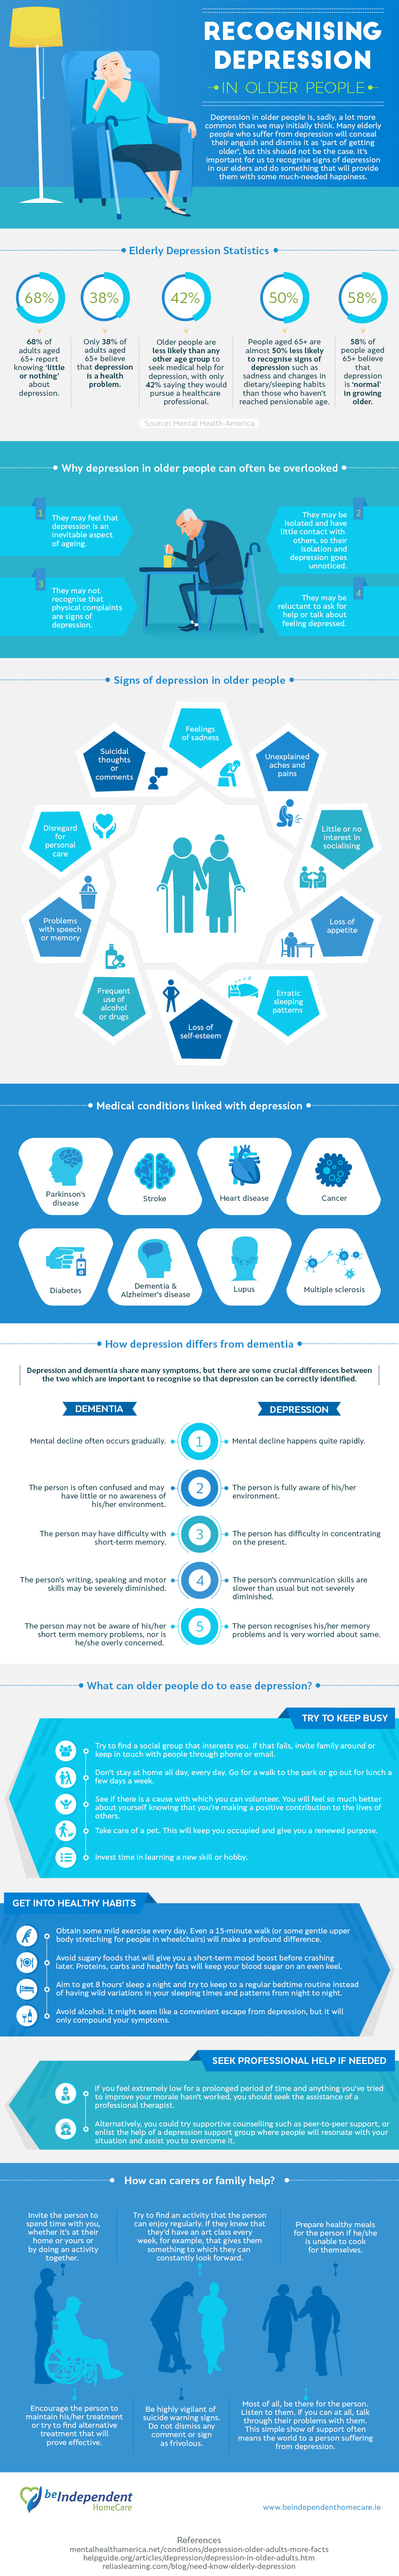 Recognising Depression in Older People infographic